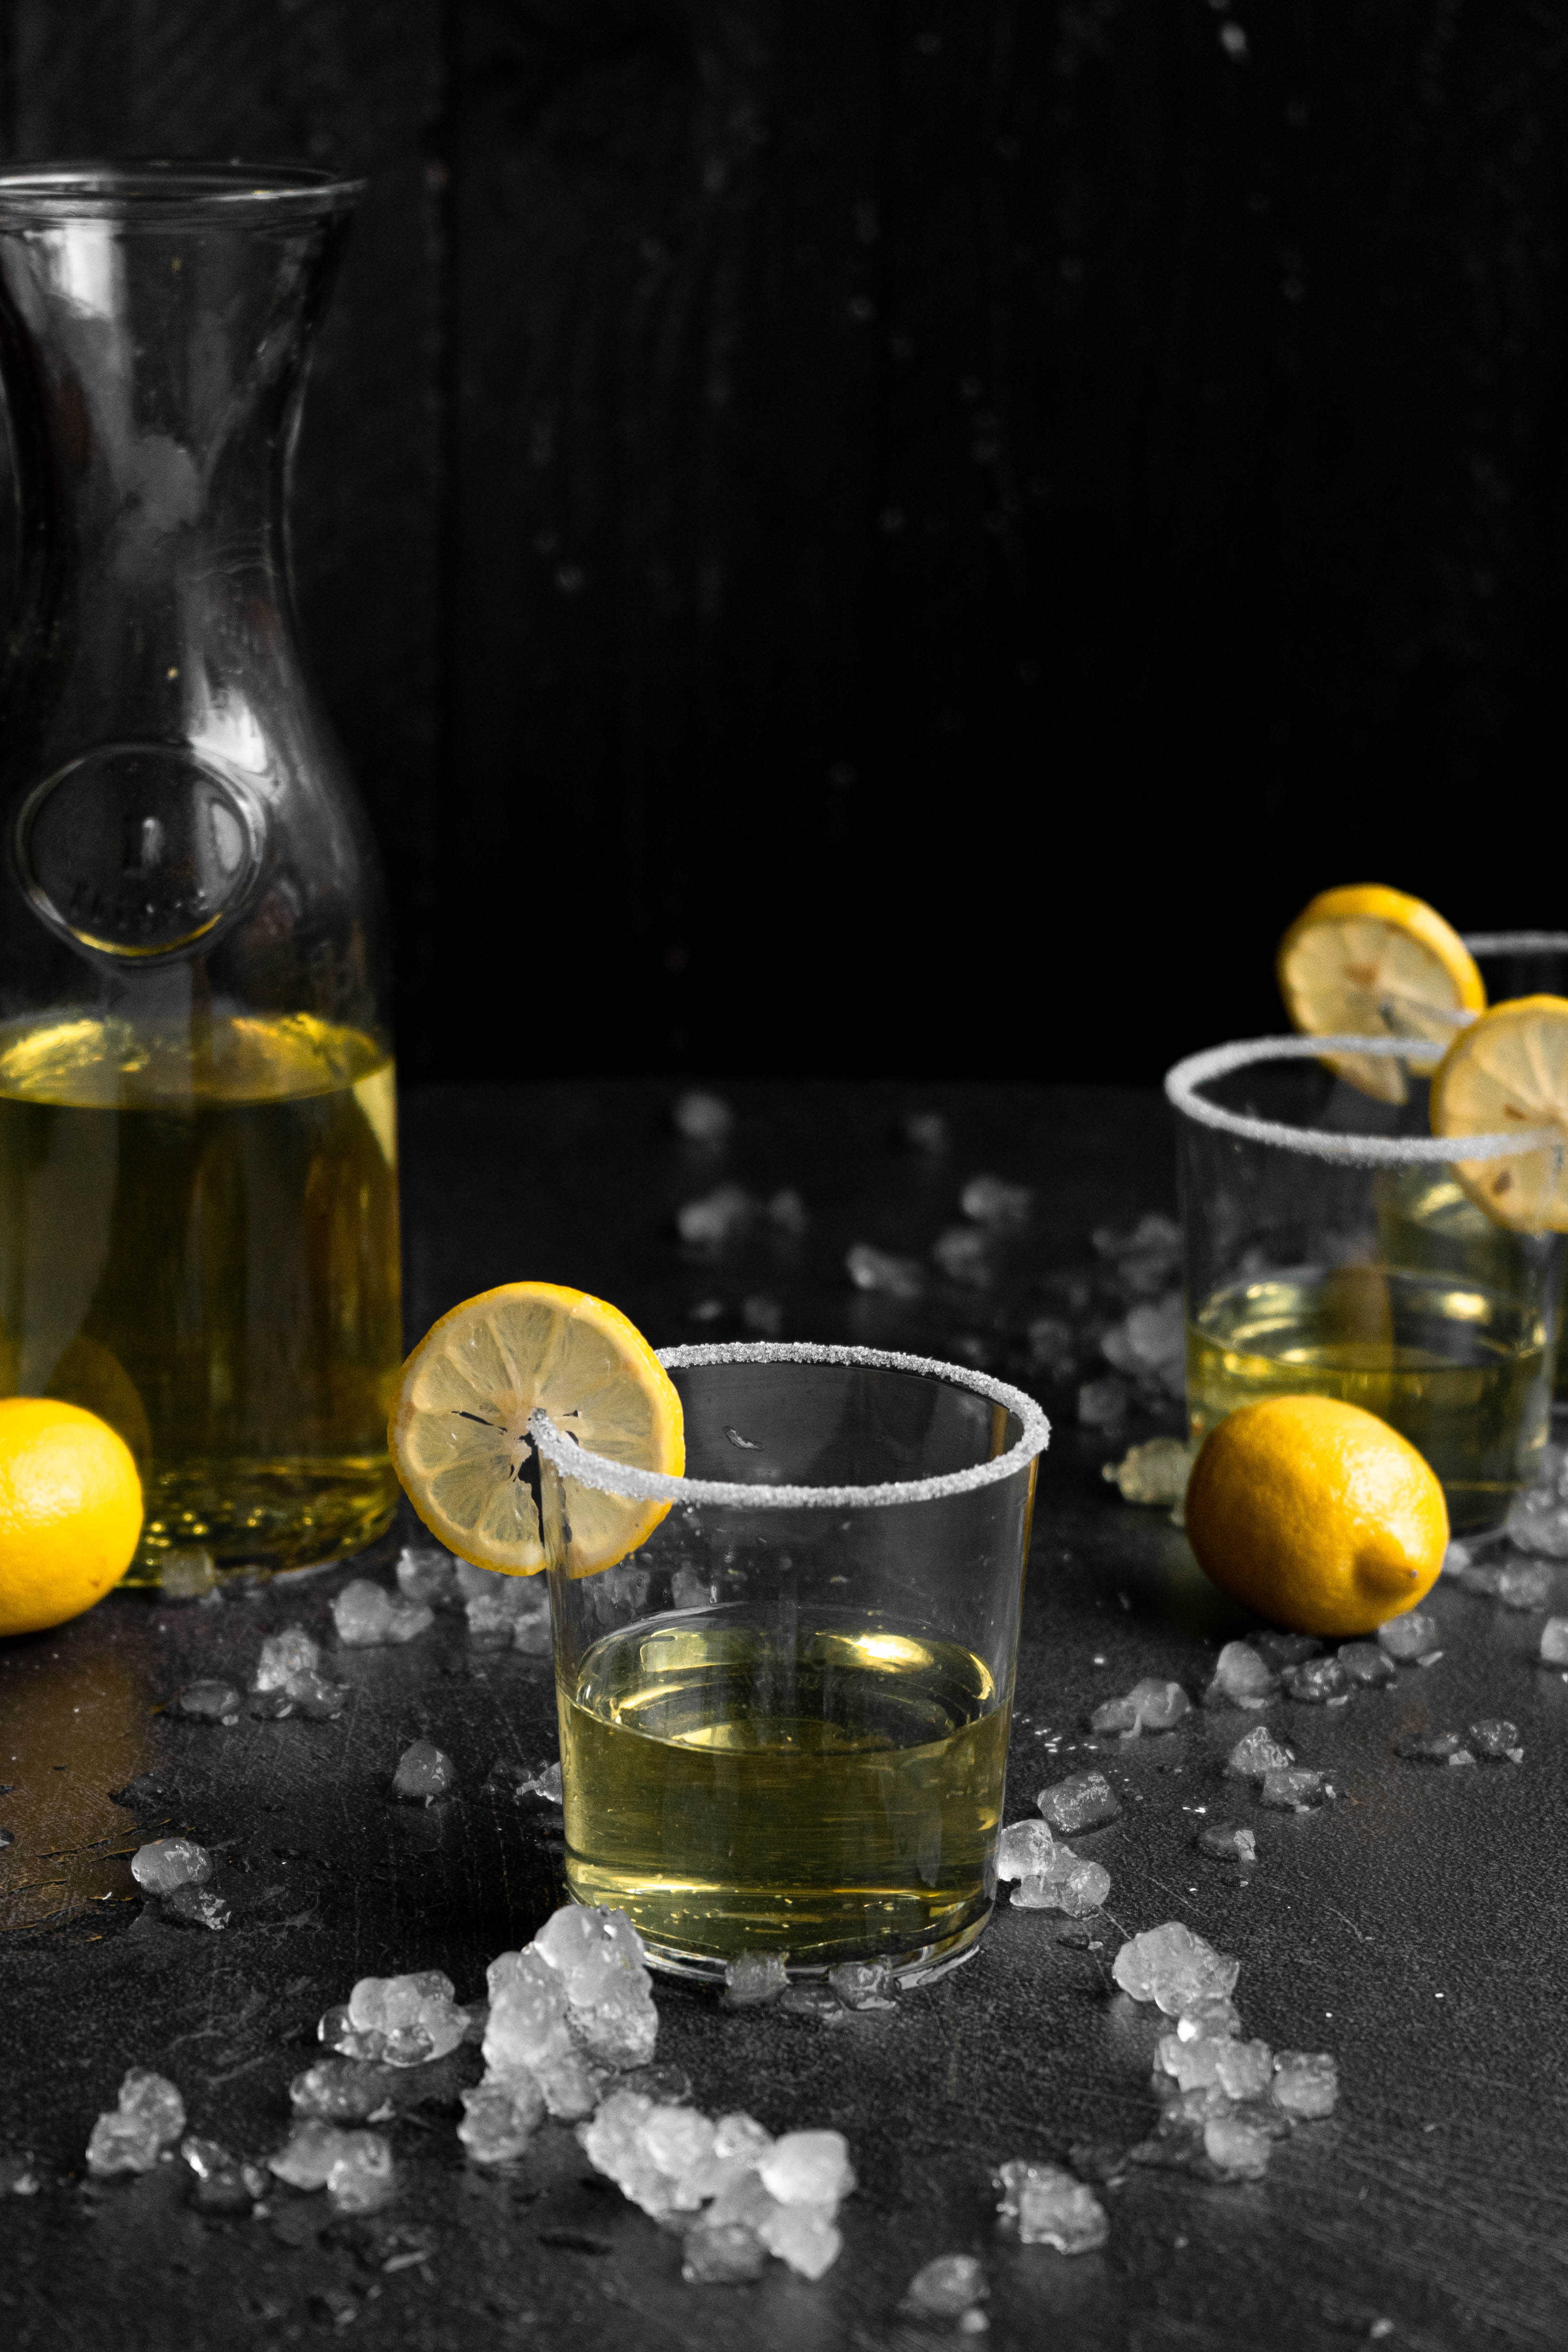 Glasses of limoncello with ice and lemons